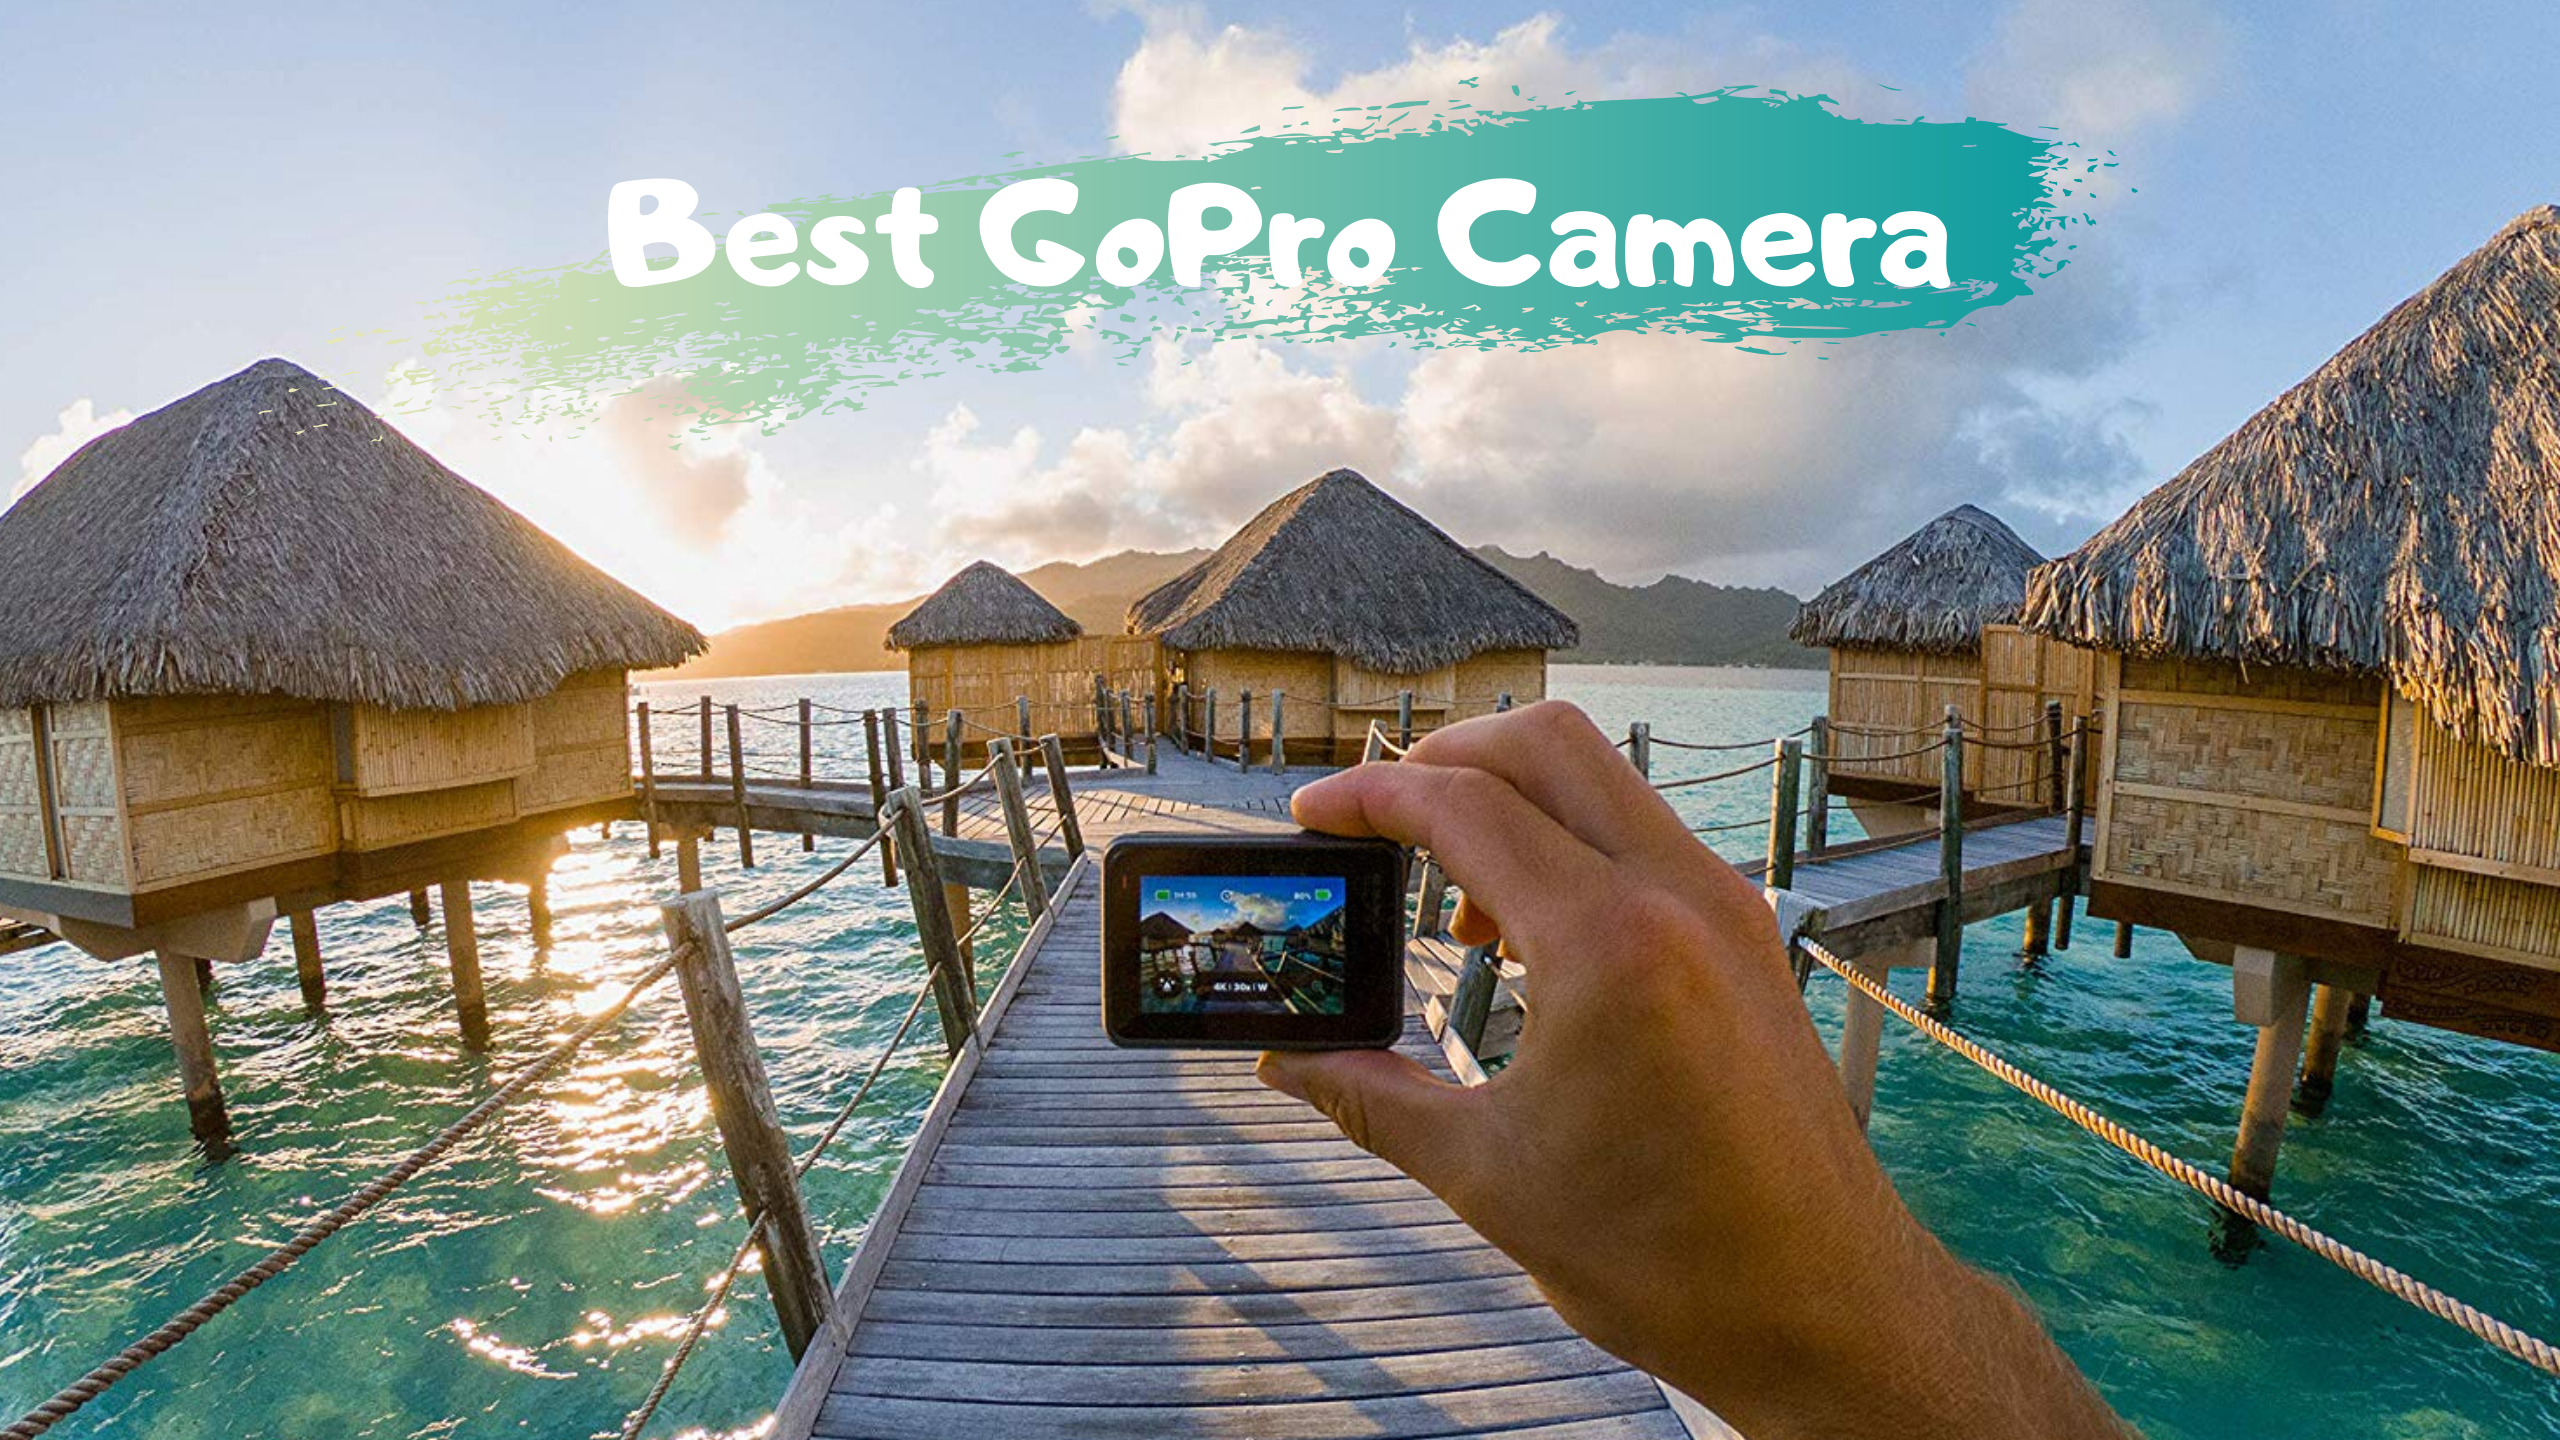 Best GoPro Camera In 2020 – Top 8 Rated Reviews